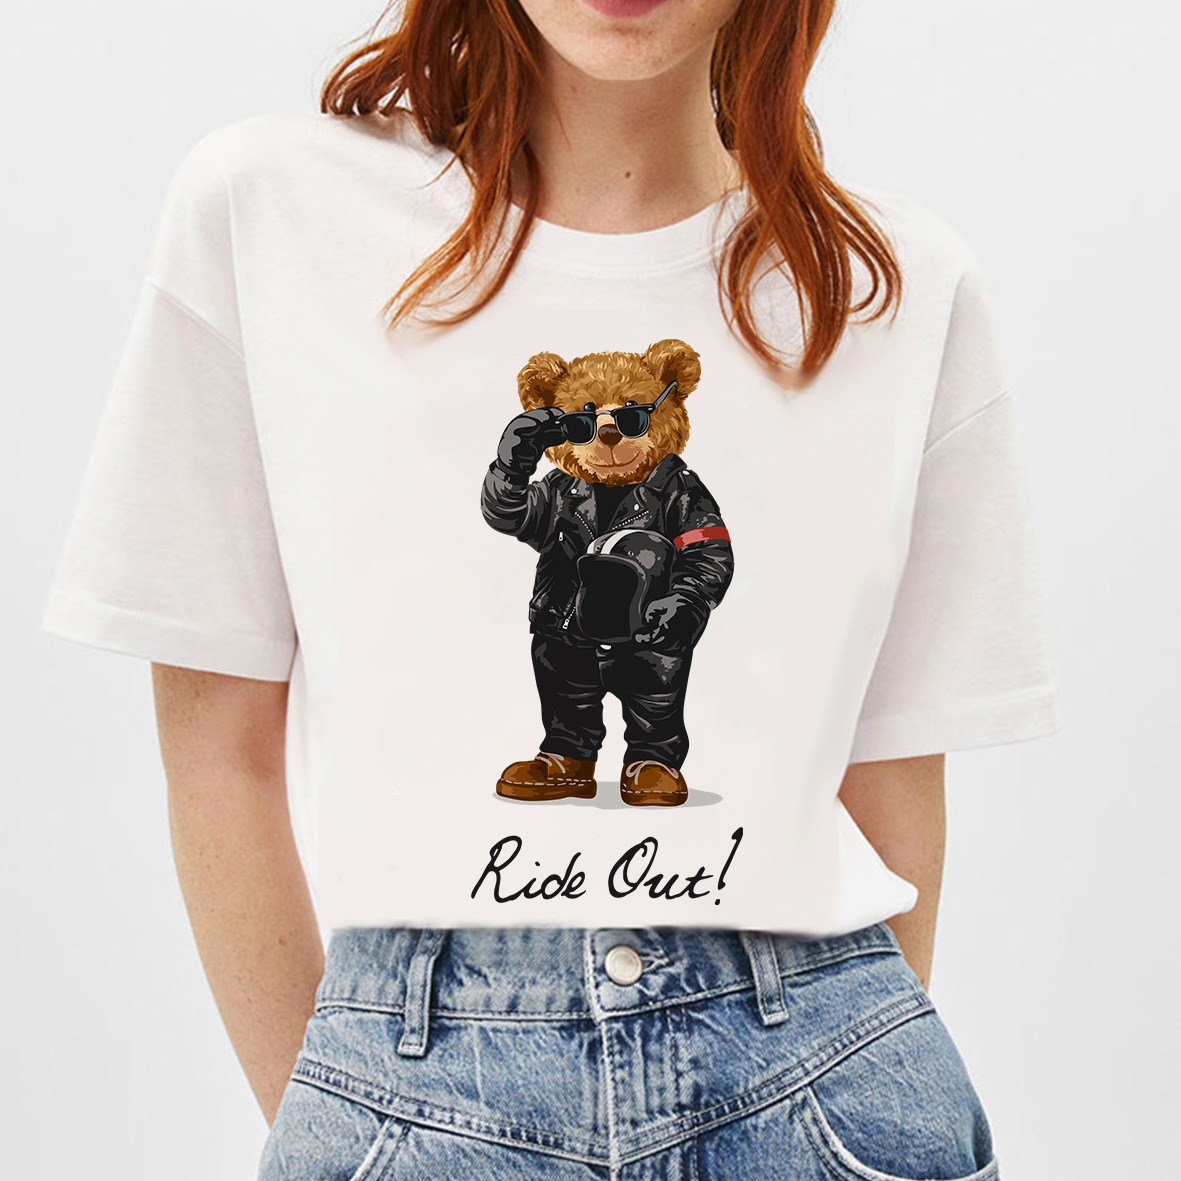 BLINGPAW Graphic Tees Teddy Bear Ride Out Letter Print T-shirt White Cotton Unisex Top&Tees Summer Custom Tee Shirts Tops